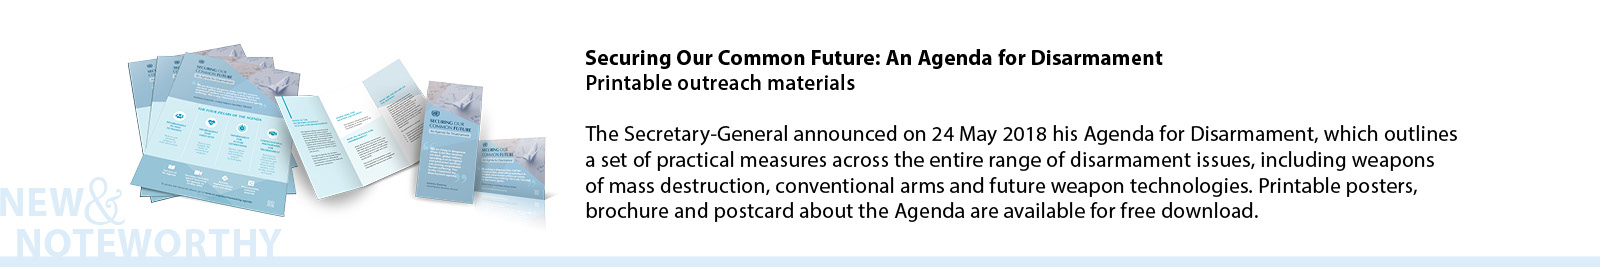 Securing Our Common Future: An Agenda for Disarmament - Printable outreach materials - The Secretary-General announced on 24 May 2018 his Agenda for Disarmament, which outlines a set of practical measures across the entire range of disarmament issues, including weapons of mass destruction, conventional arms and future weapon technologies. Printable posters, brochure and postcard about the Agenda are available for free download.